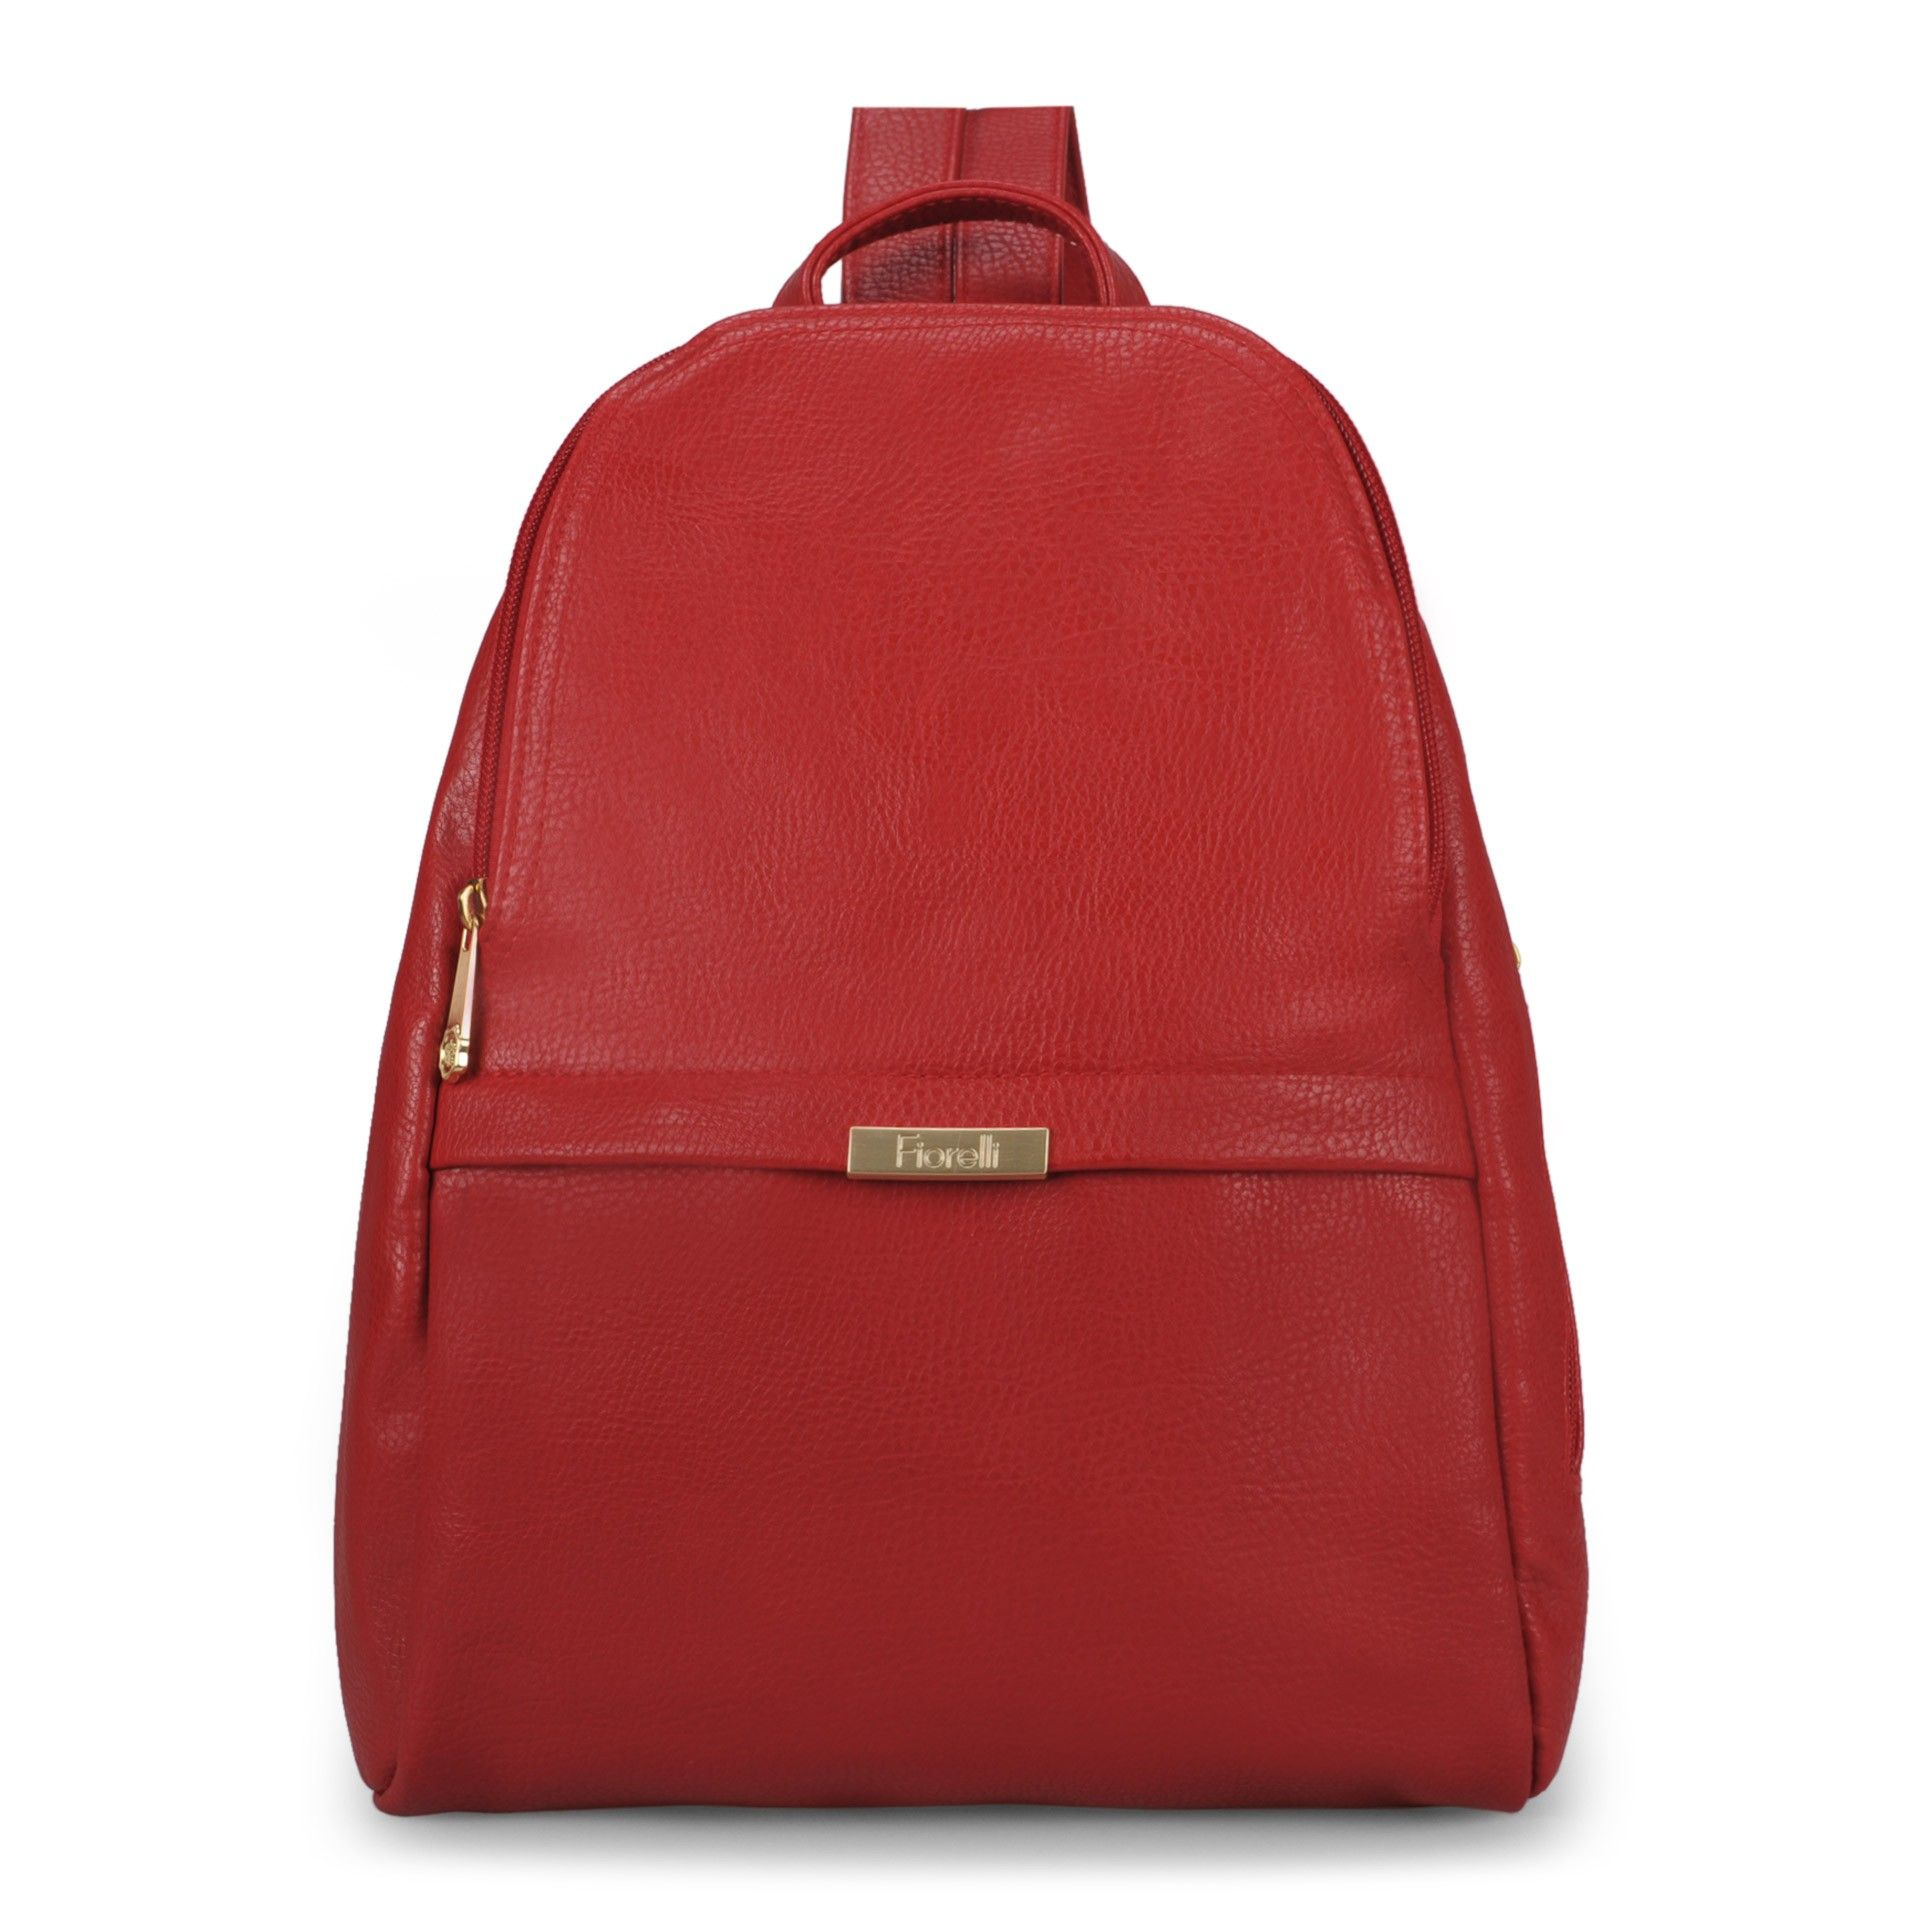 This Fiorelli faux leather backpack is the perfect accessory for a